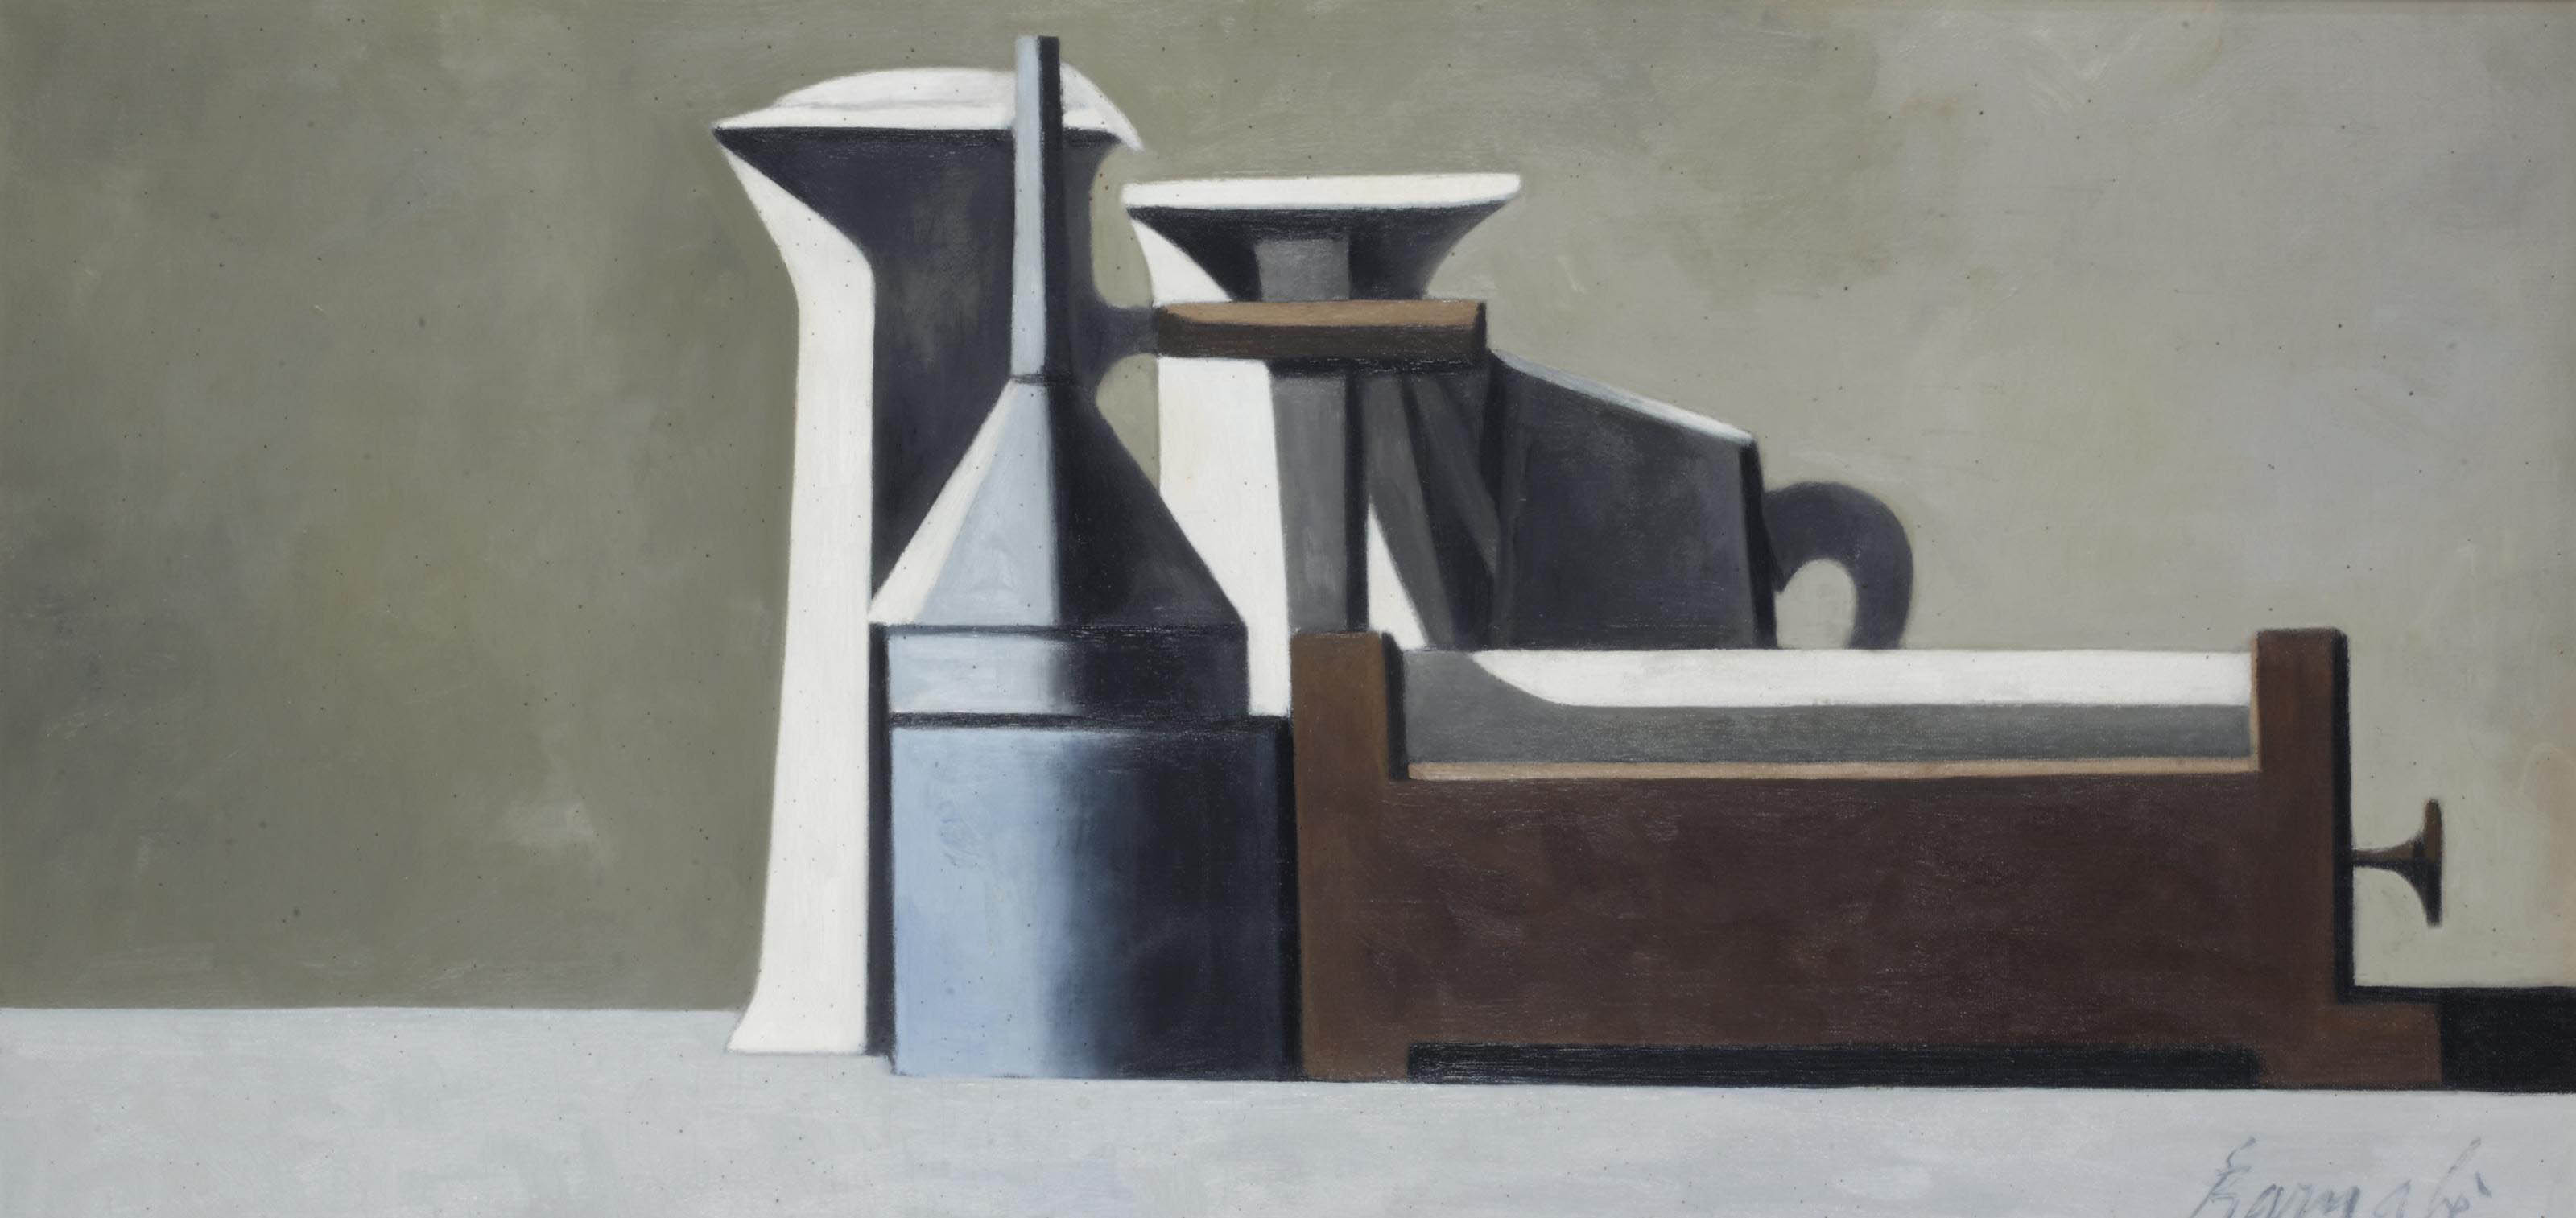 A still life with a funnel